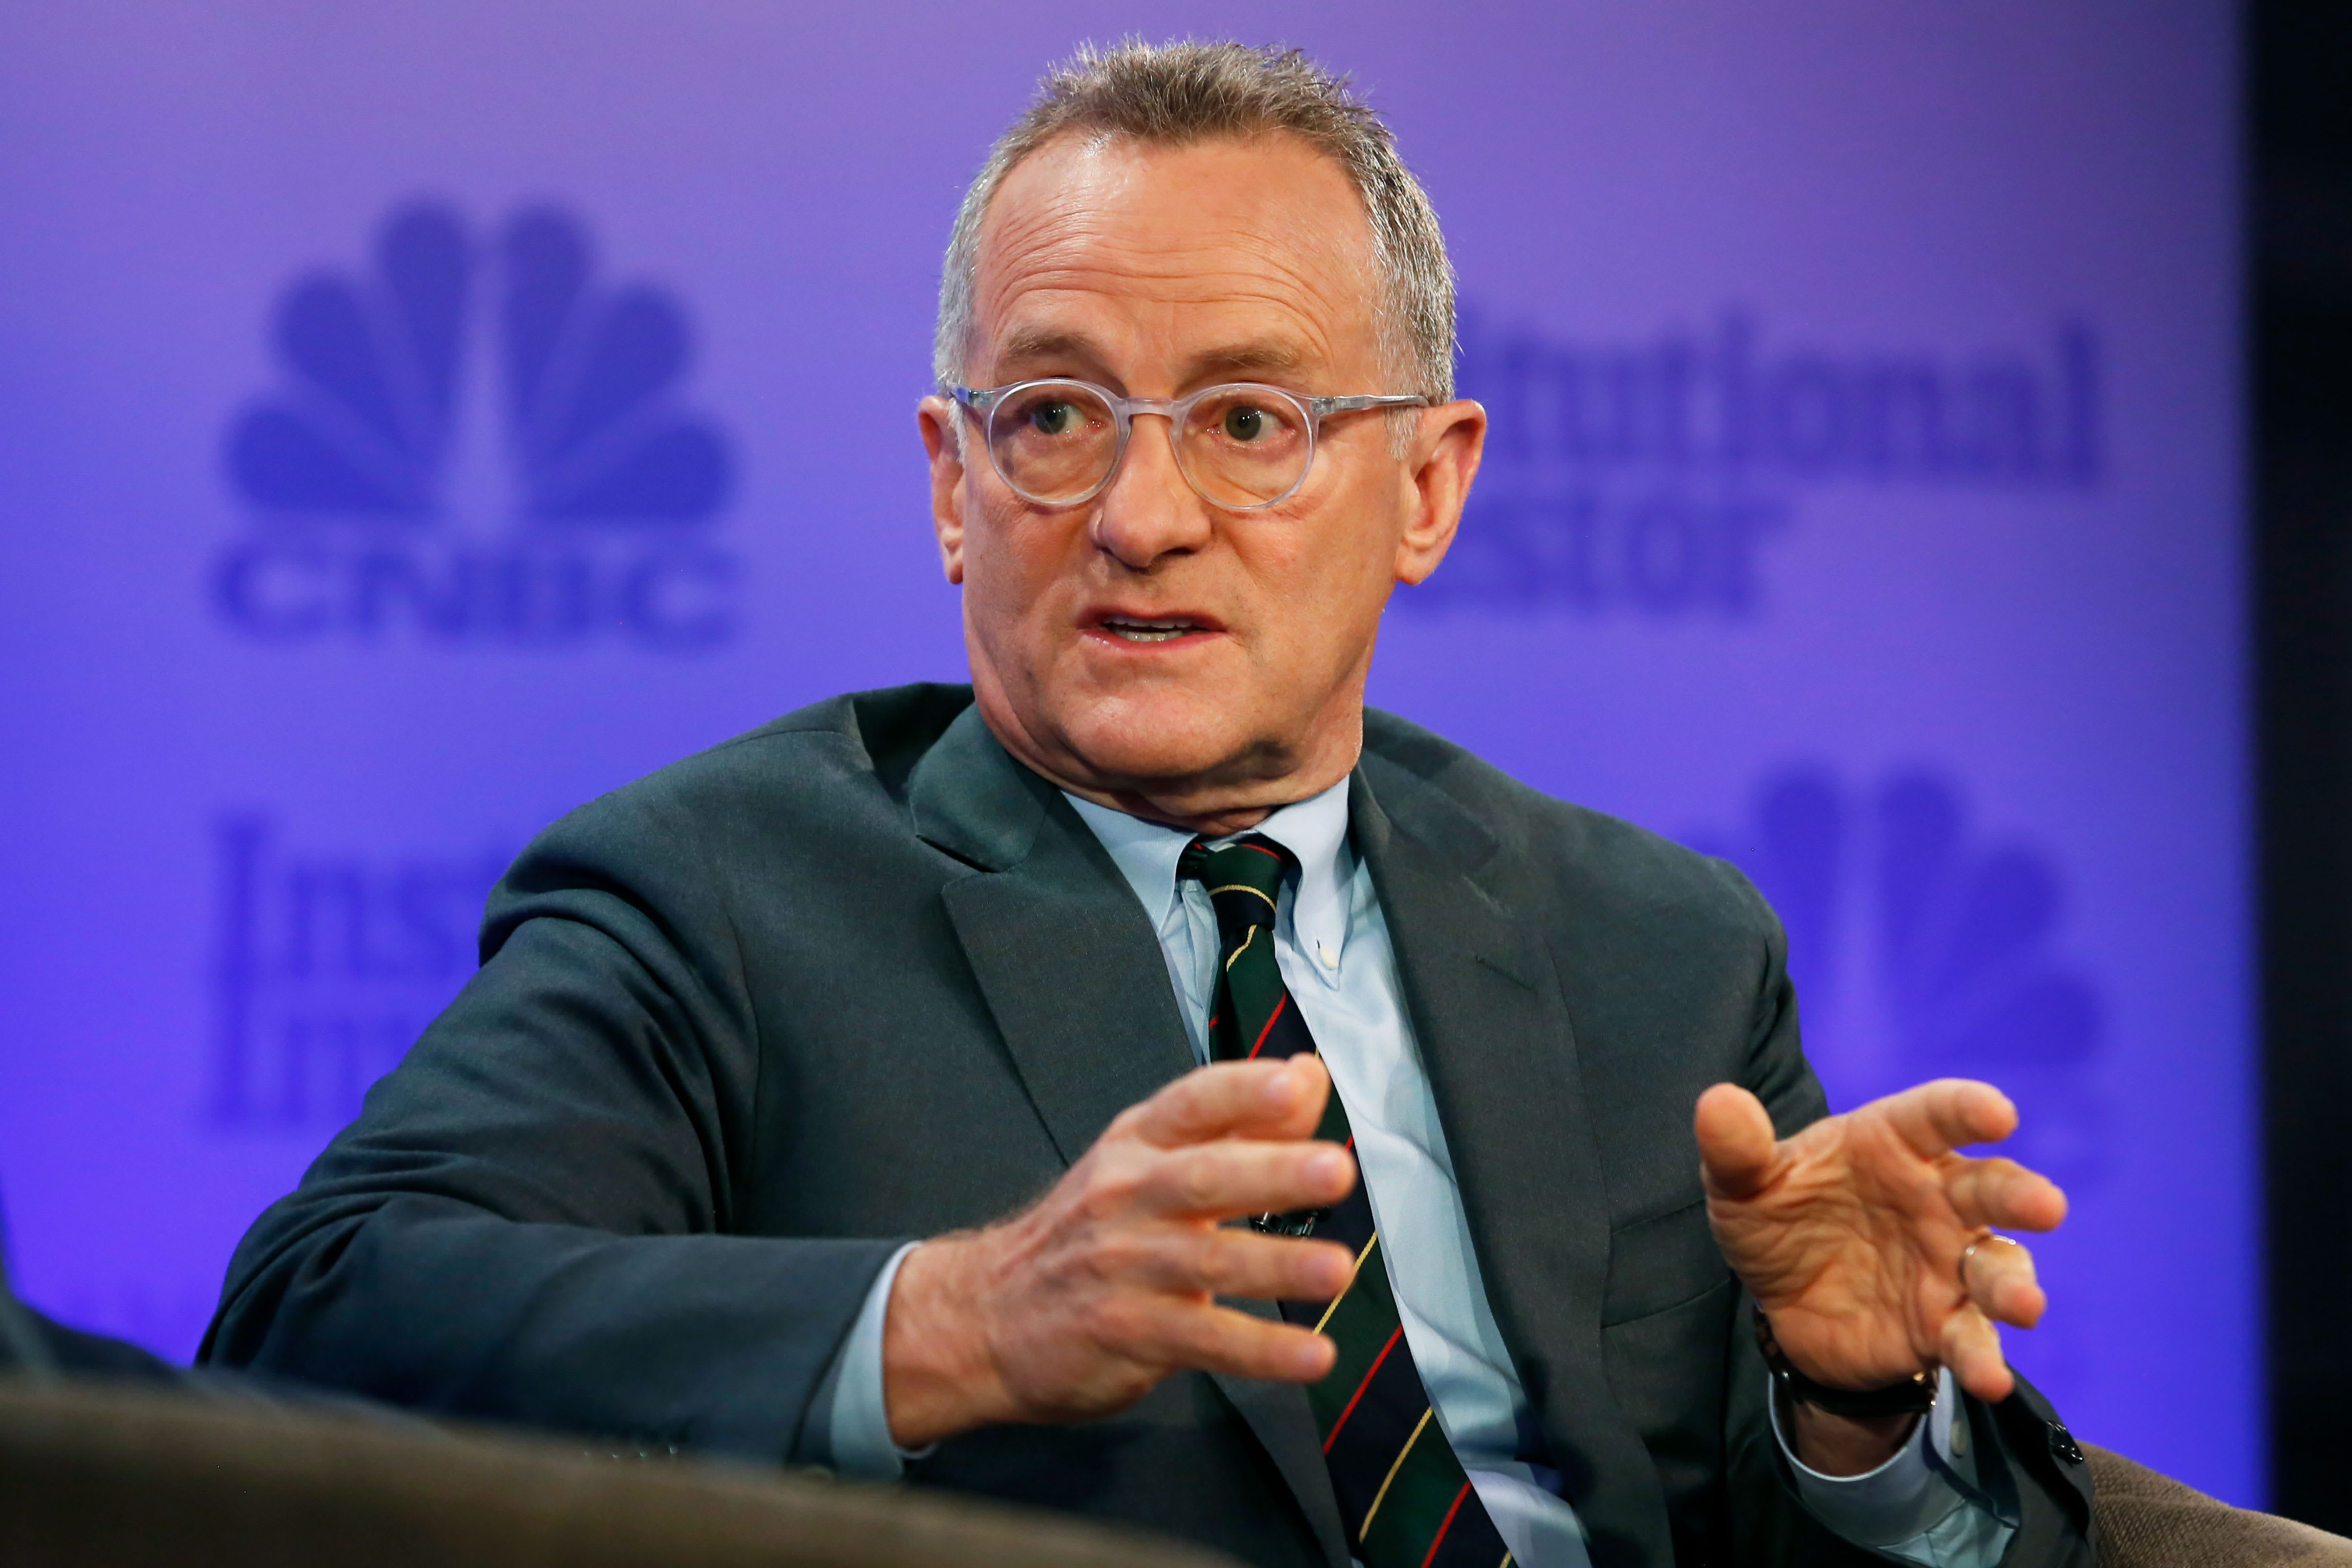 Howard Marks says it's time to stop playing defense: 'We're buying today when we find good value'